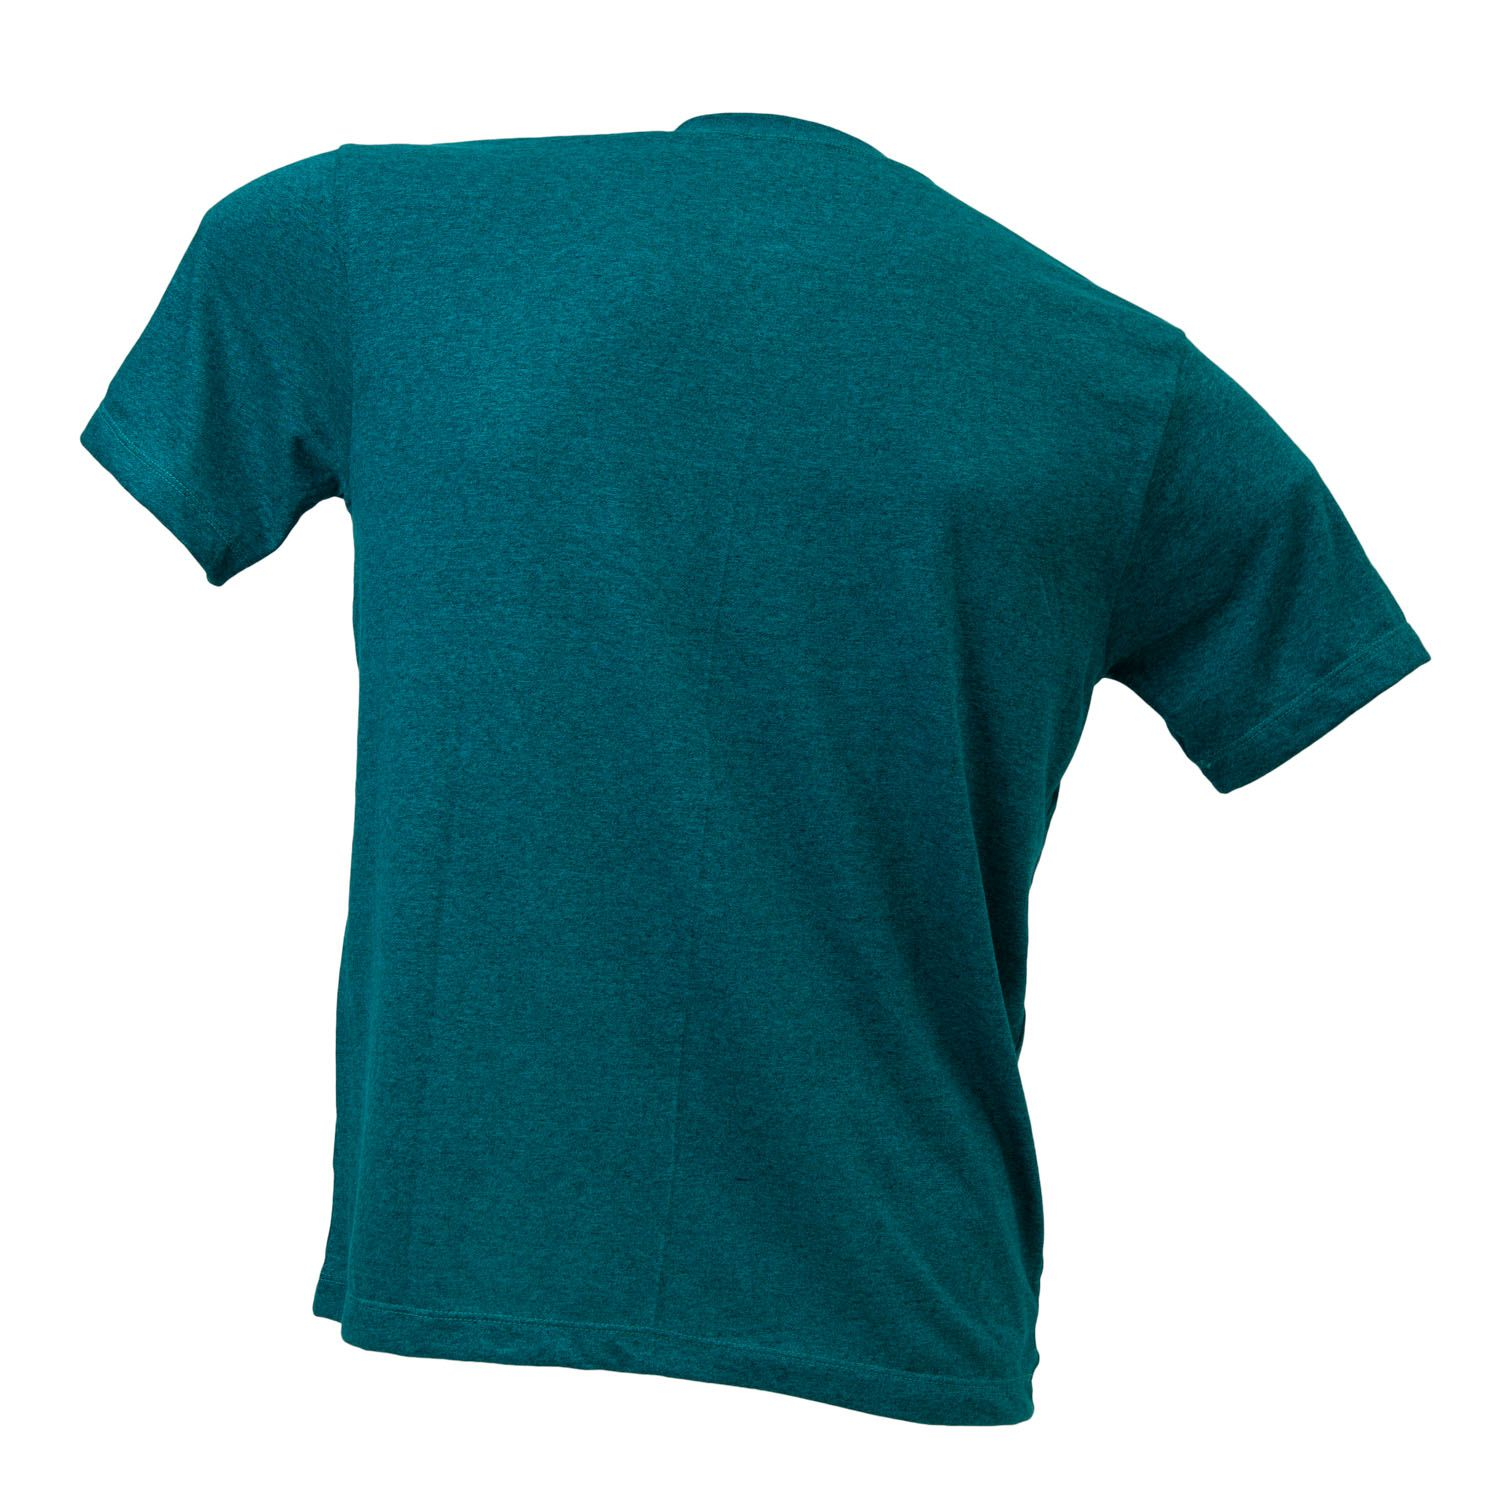 Camiseta verde ultrafine A Gloriosa